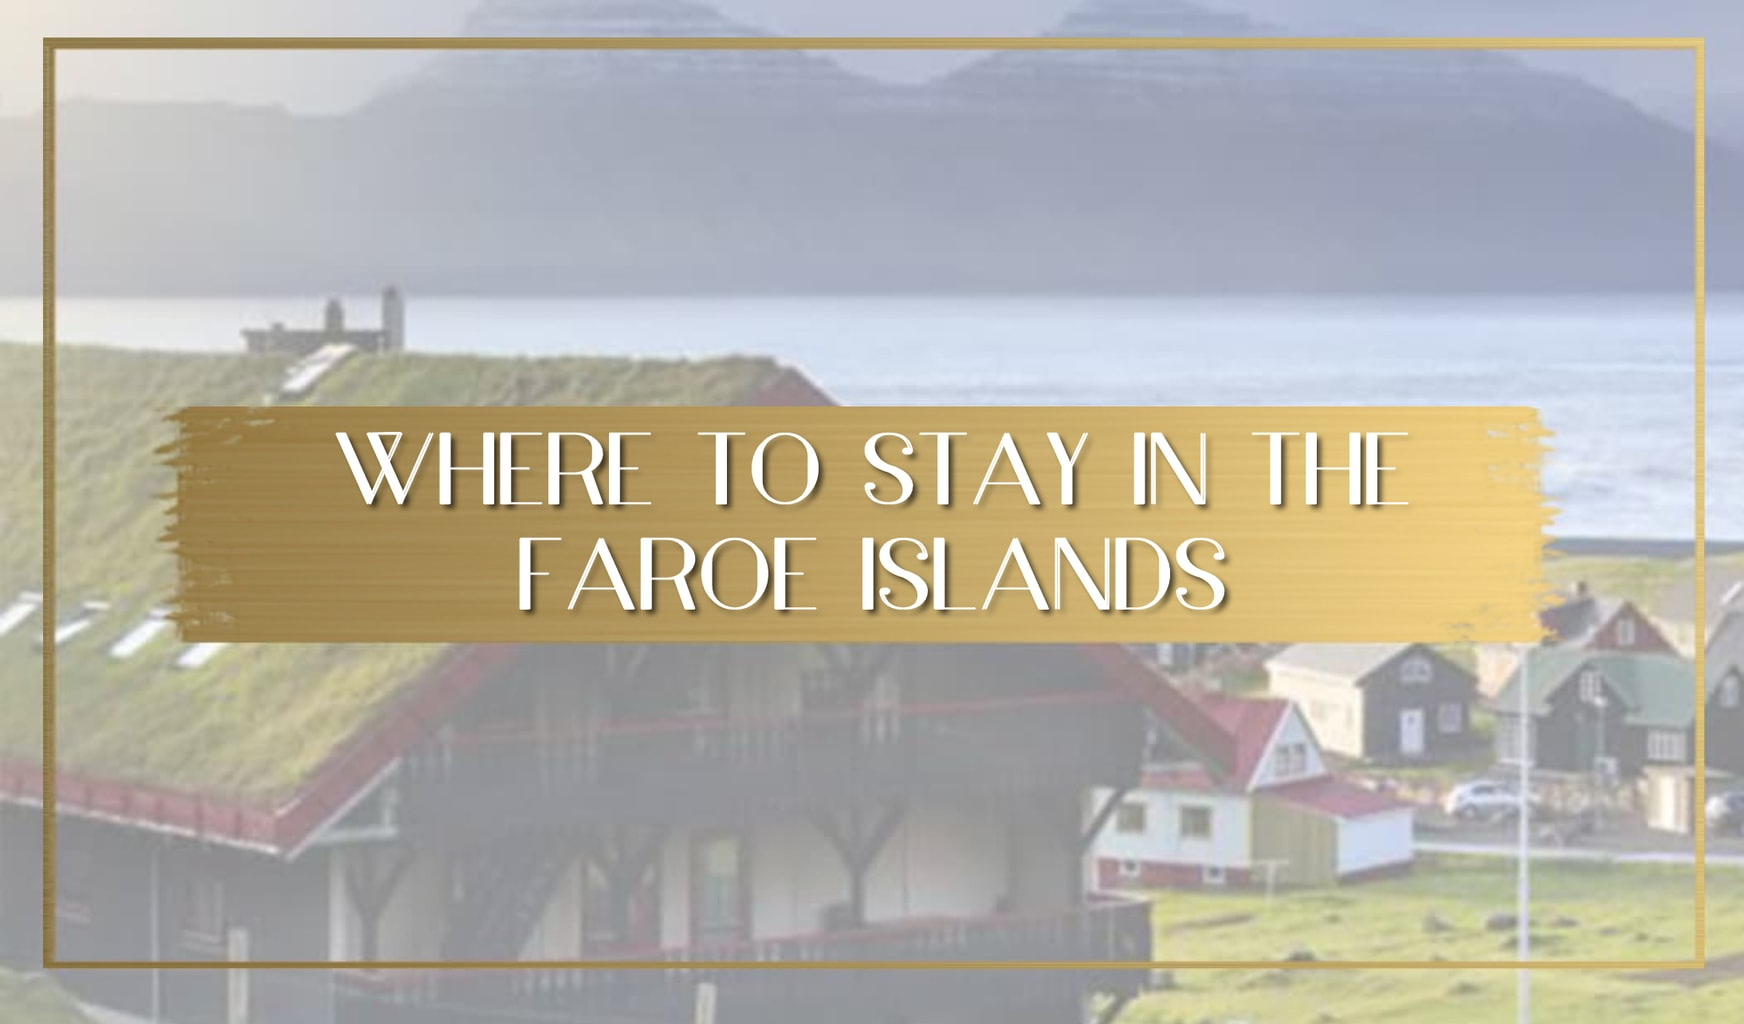 Where to stay in the Faroe Islands main